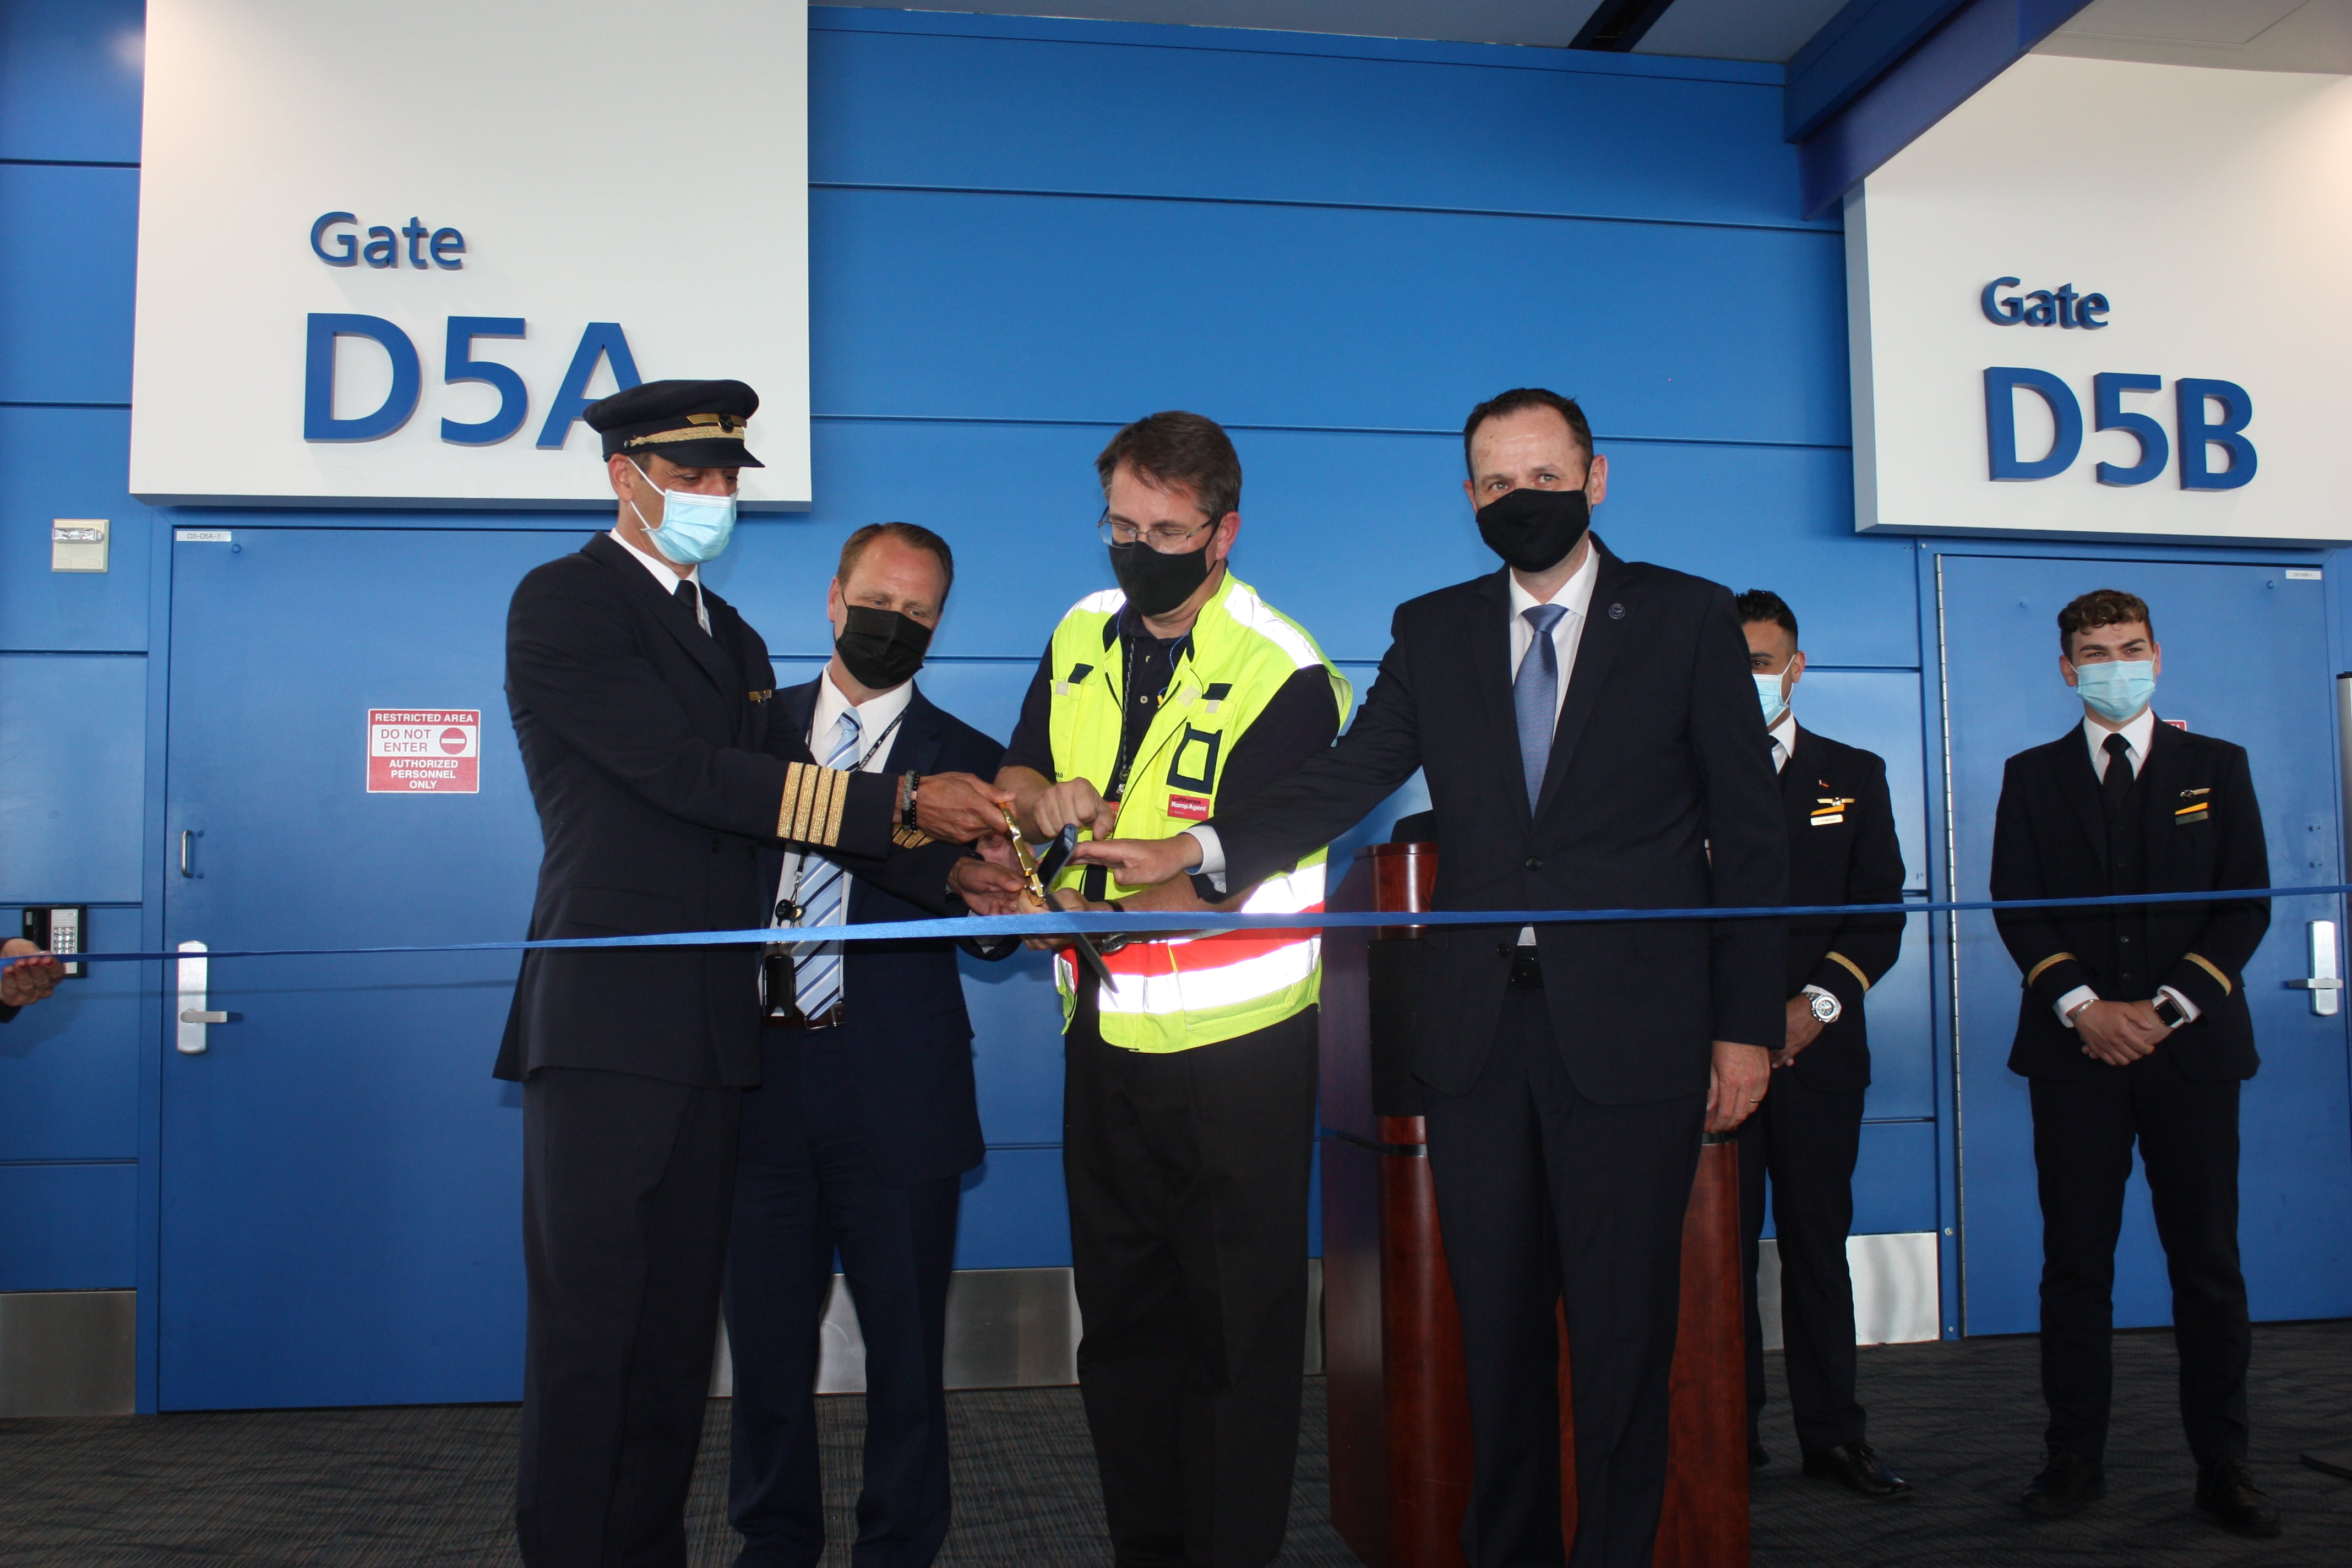 Ribbon-cutting ceremony at DTW to celebrate the resumption of intercontinental flights to and from Detroit to Frankfurt. Pictured l to r: Captain Gunnes (Lufthansa), Chad Newton (Wayne County Airport Authority), Chris Rampin (Lufthansa Station Manager), Frank Naeve (VP Sales, Lufthansa Group Passenger Airlines, The Americas)